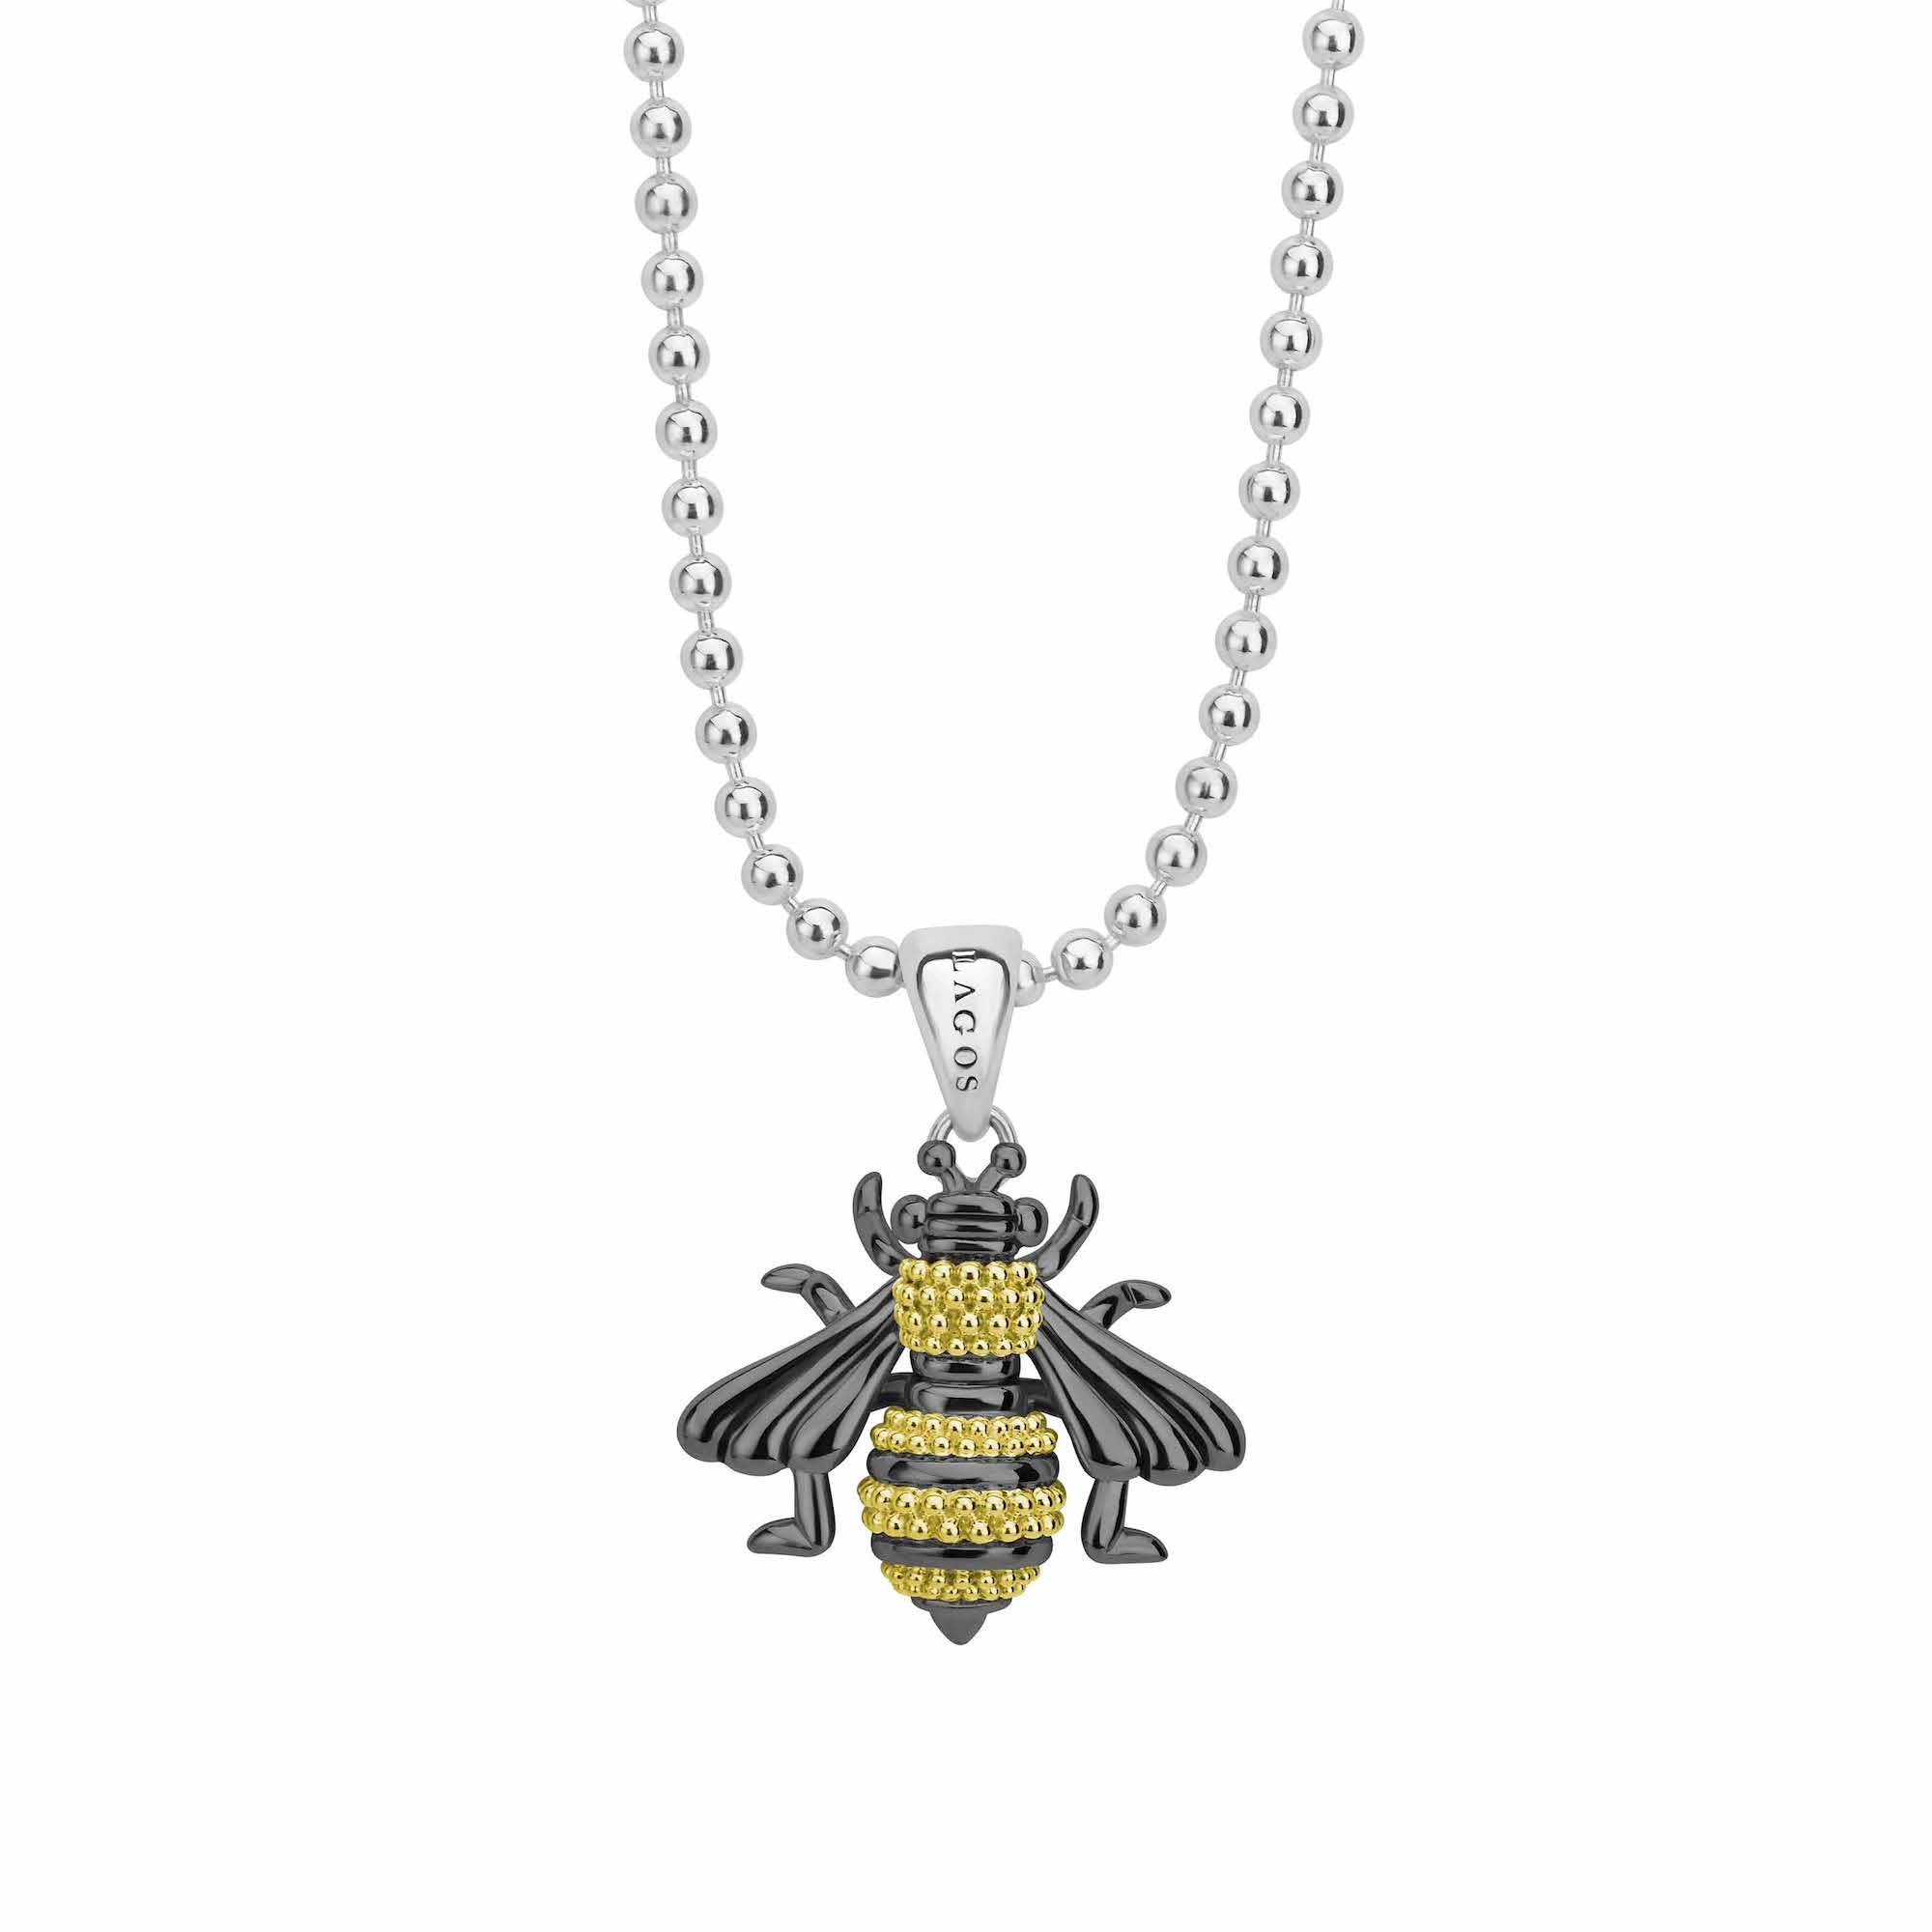 Rare Wonders Honeybee Necklace